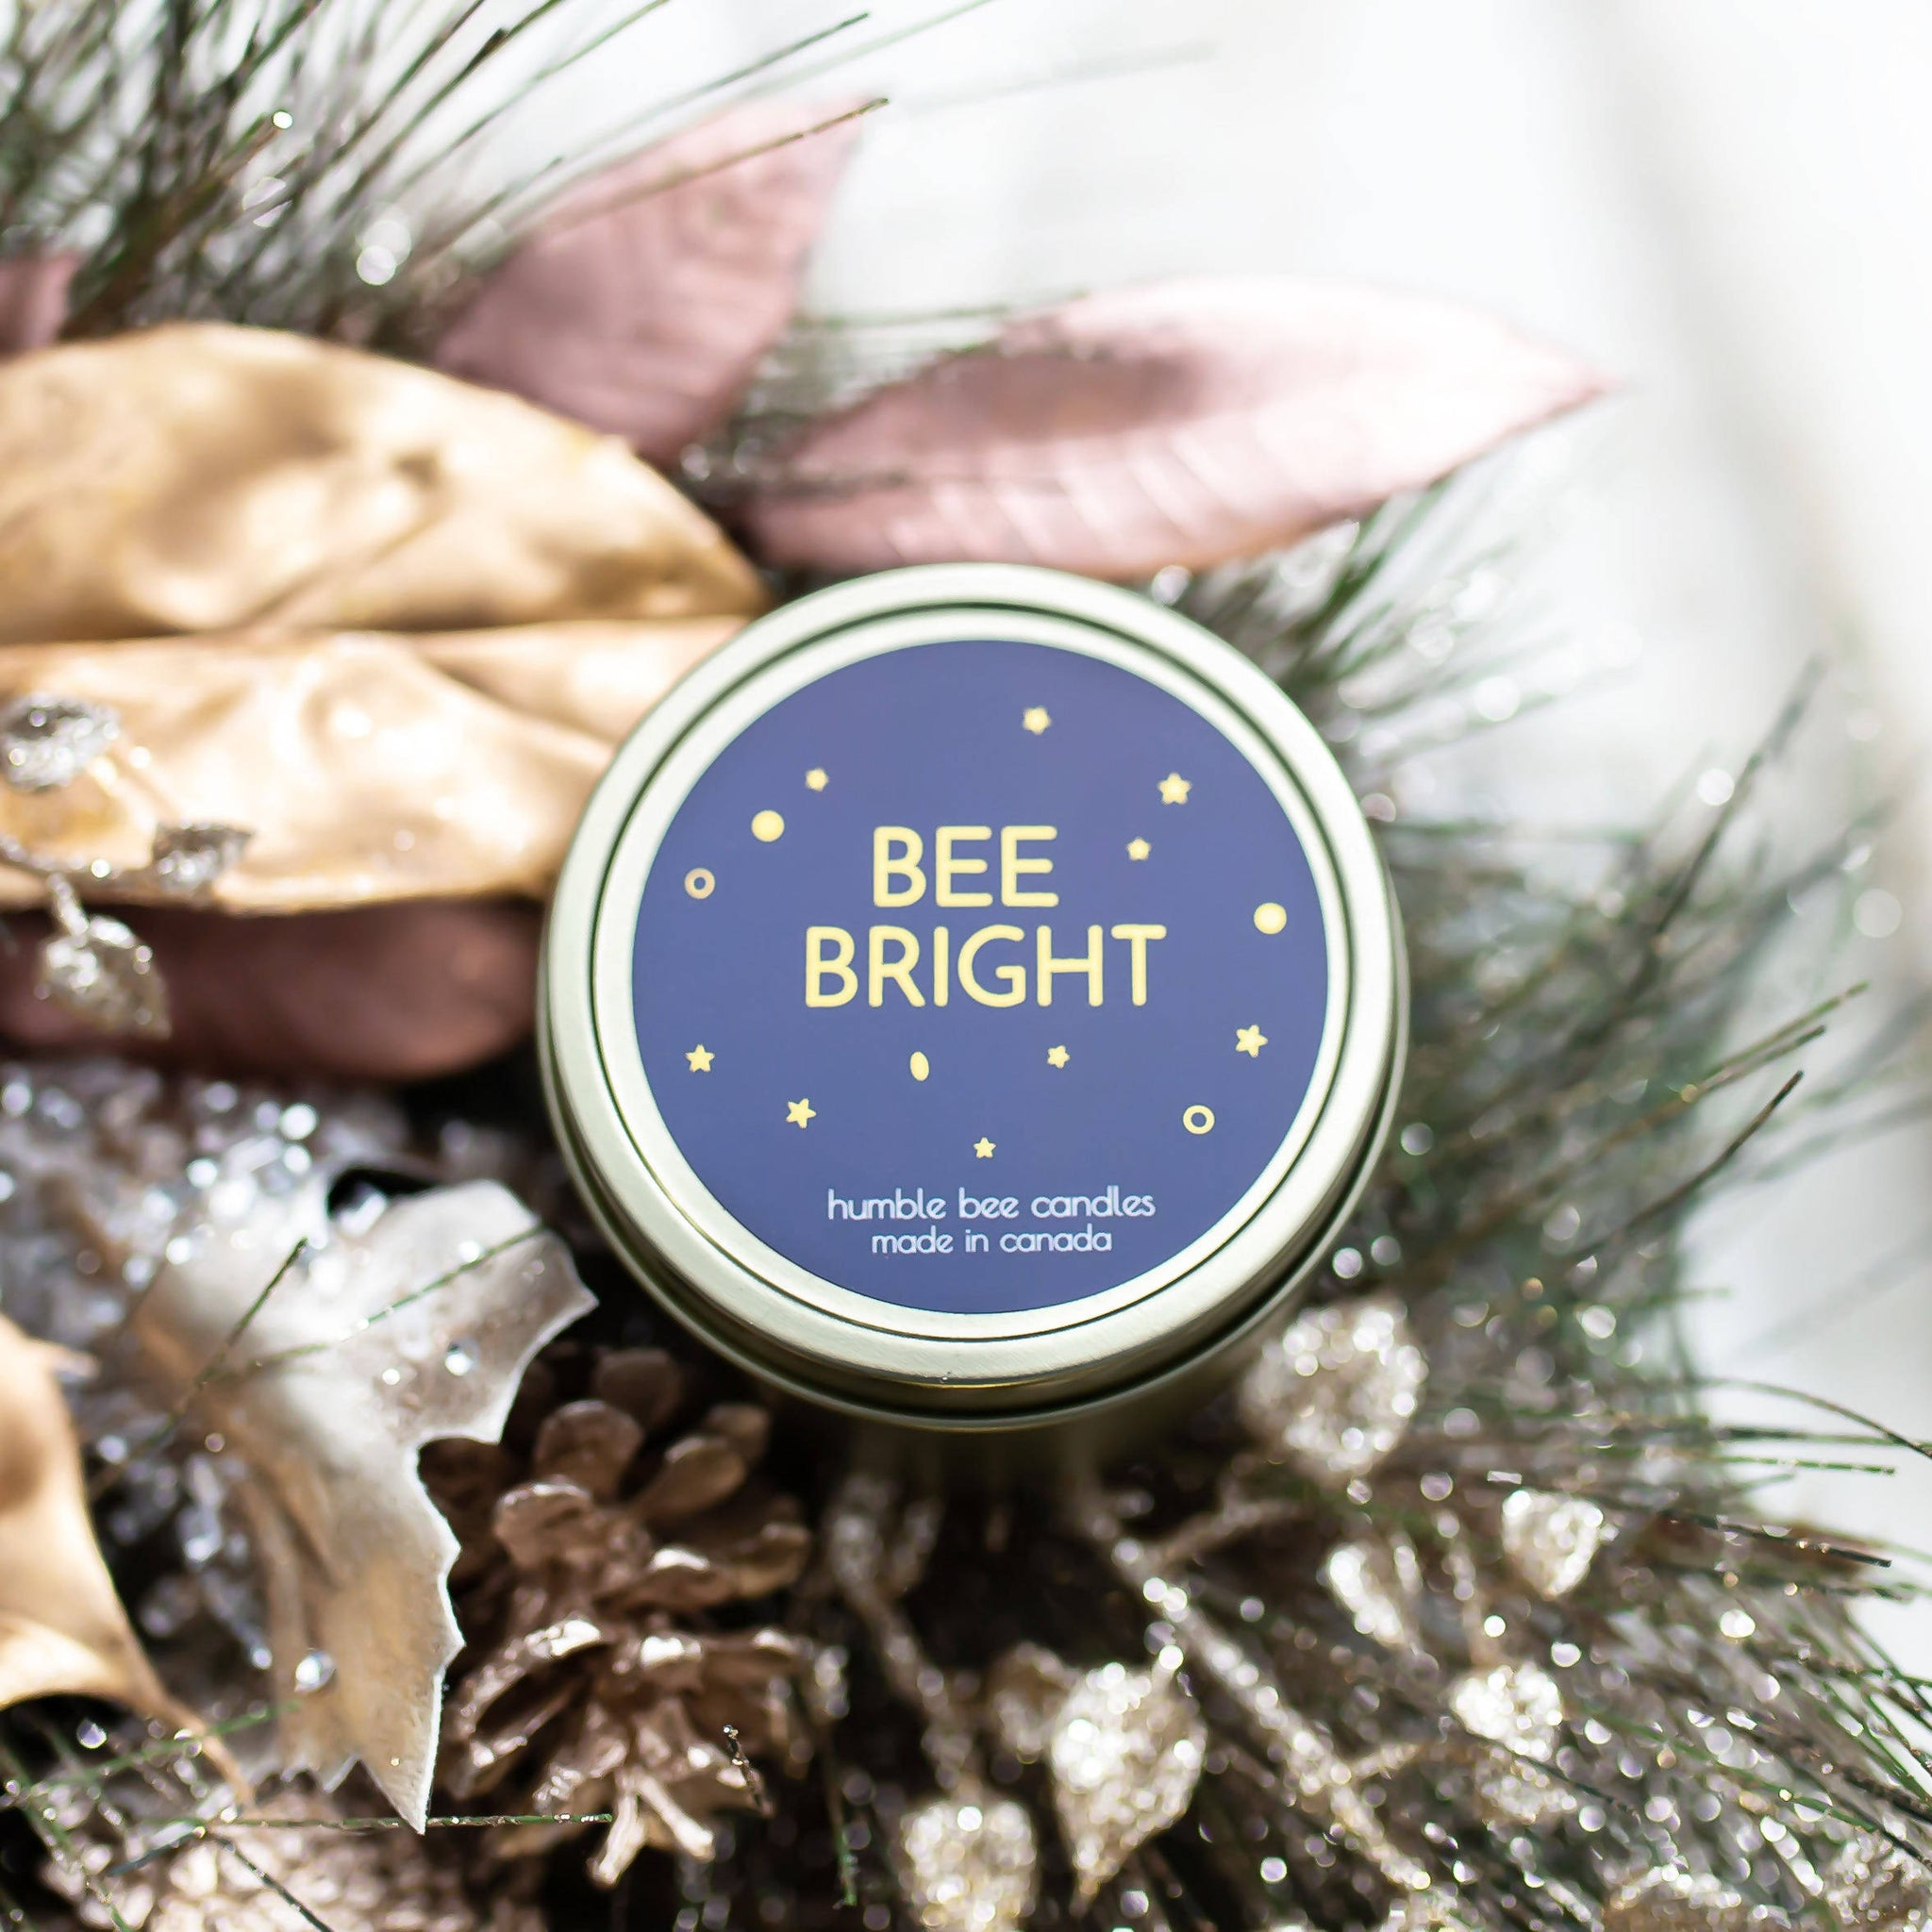 Bee Bright - Humble Bee Candles